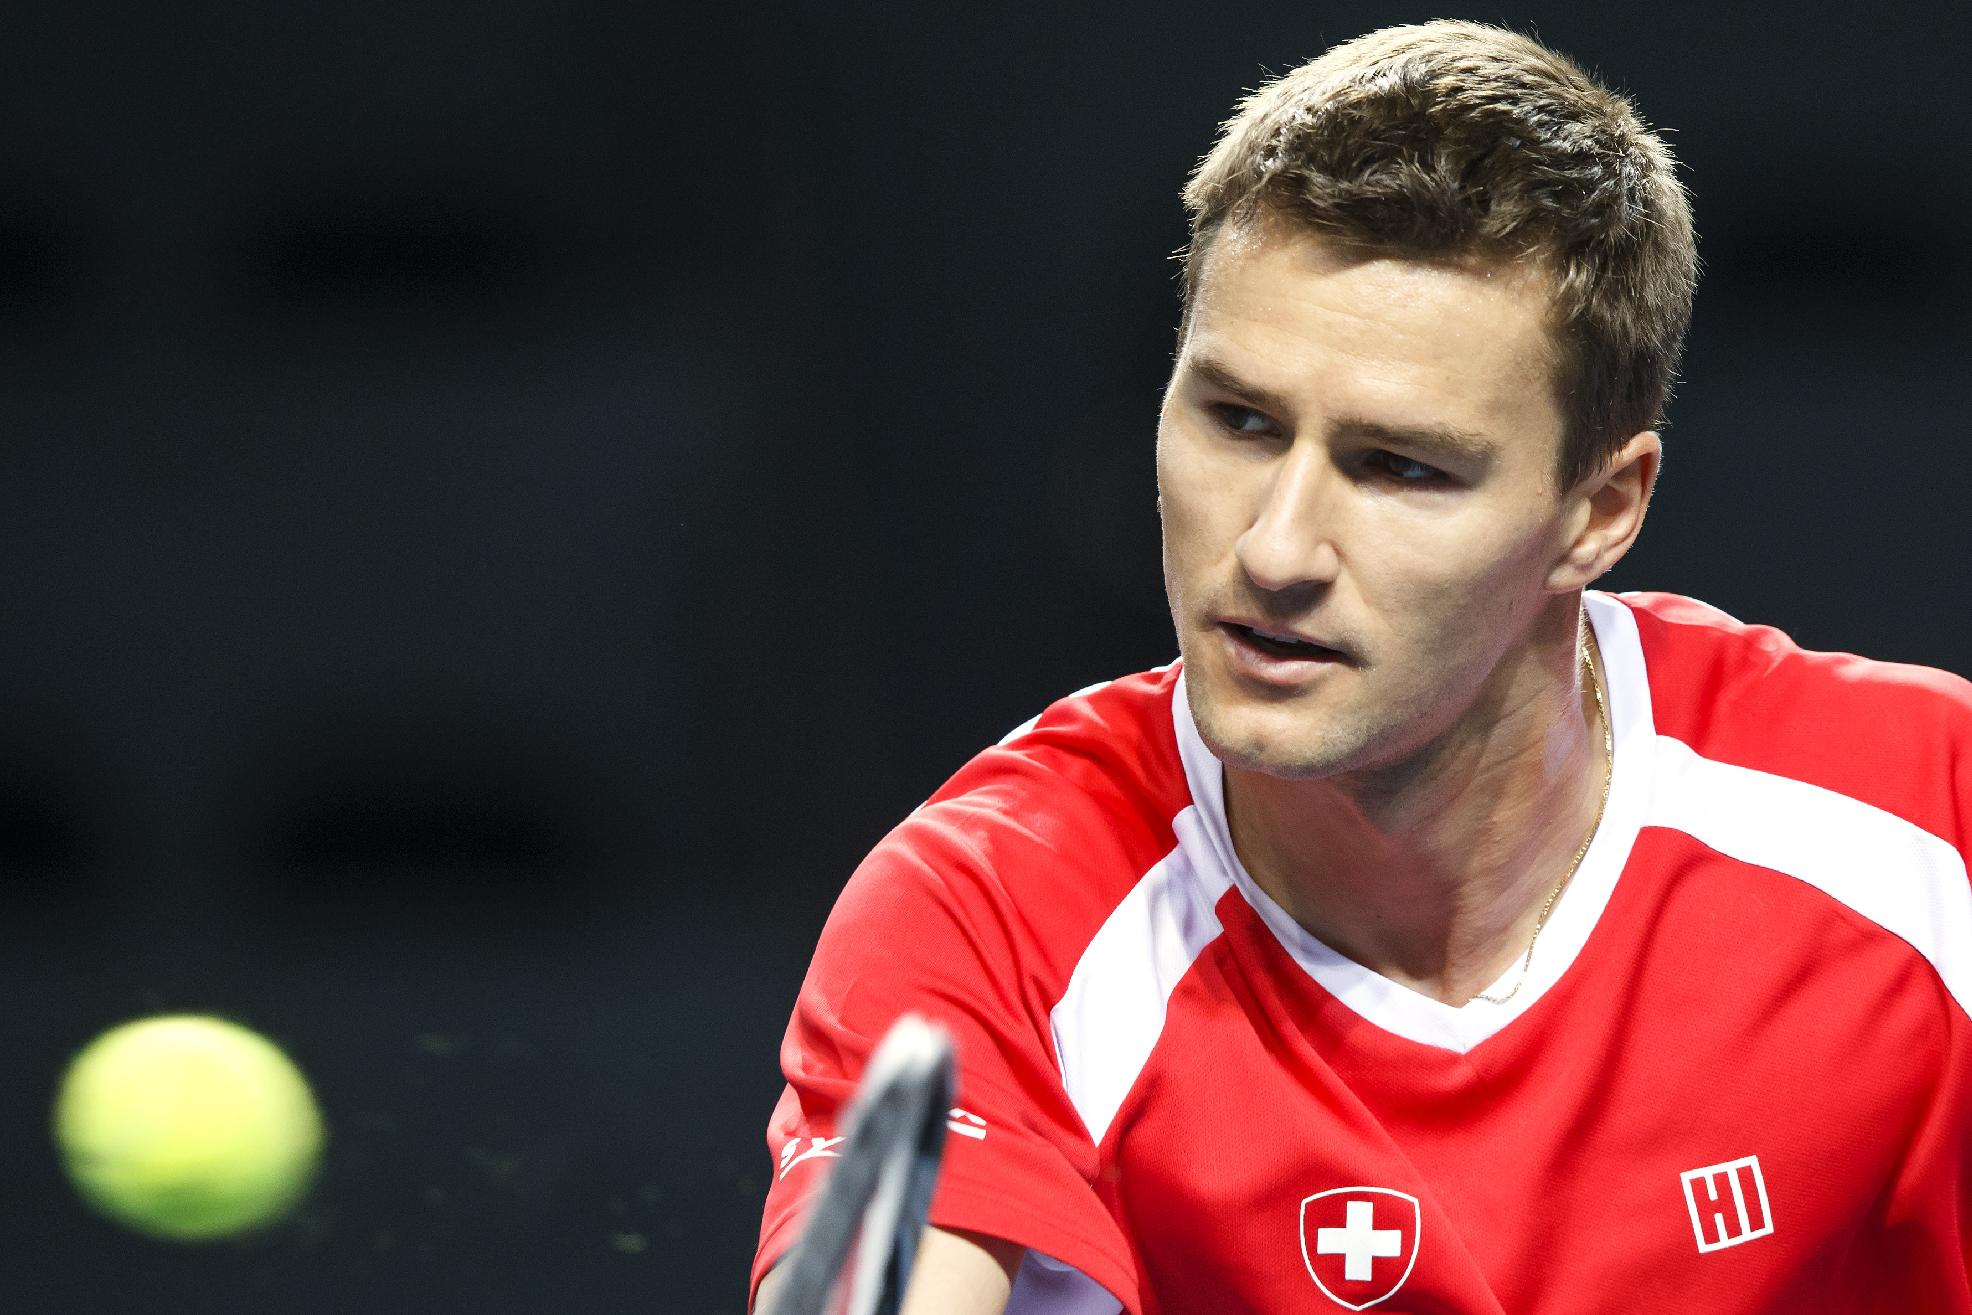 Marco Chiudinelli, of Switzerland, returns a ball, during a training session of the Swiss Davis Cup tennis team prior to the Davis Cup World Group quarterfinal match between Switzerland and Kazakhstan, in Geneva, Switzerland, Wednesday, April 2, 2014. The Davis Cup World Group quarterfinal  between Switzerland and  Kazakhstan will take place from April 4 to April 6